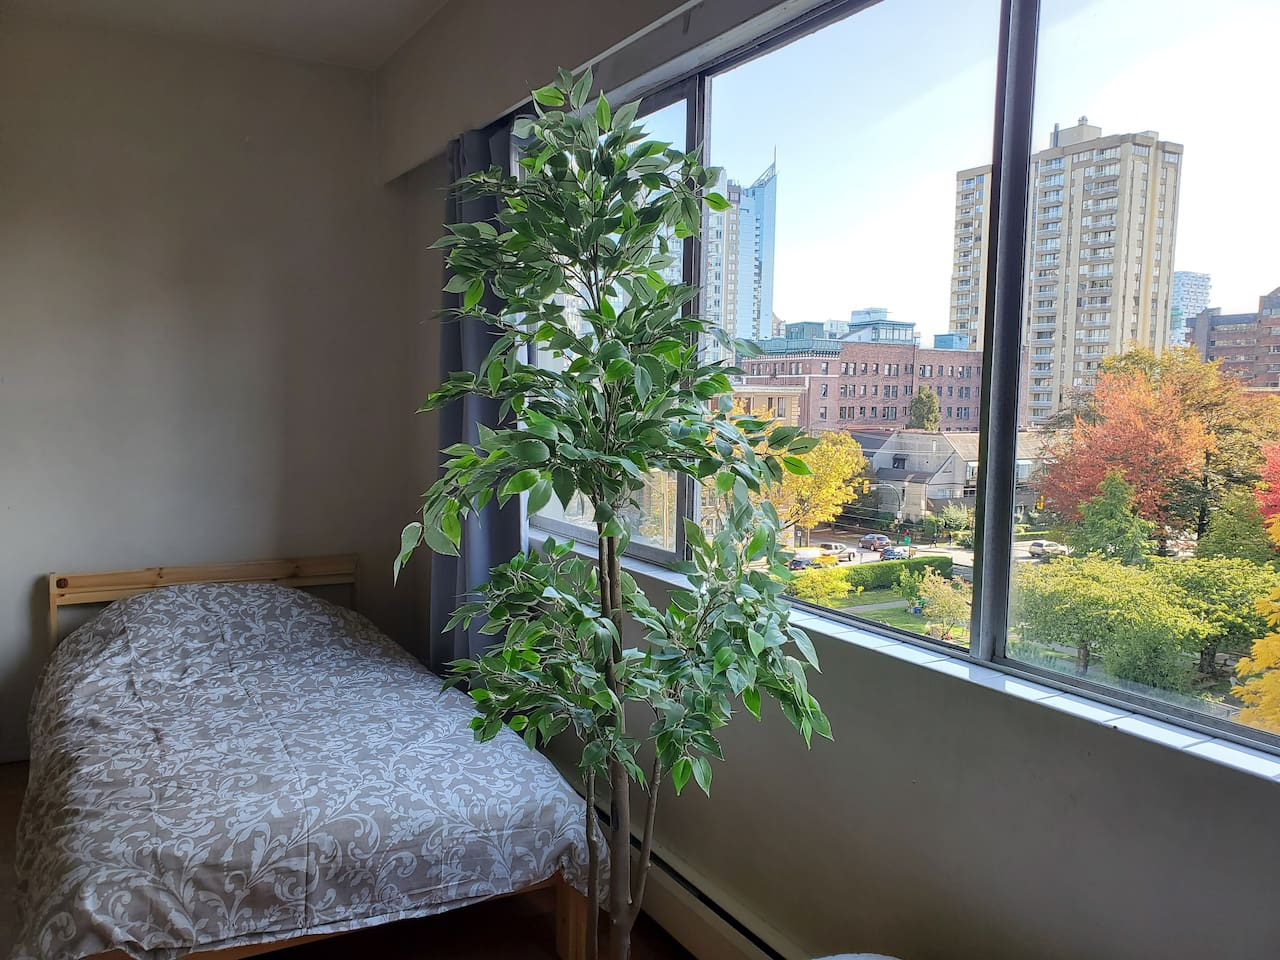 Comfortable single bed with window view